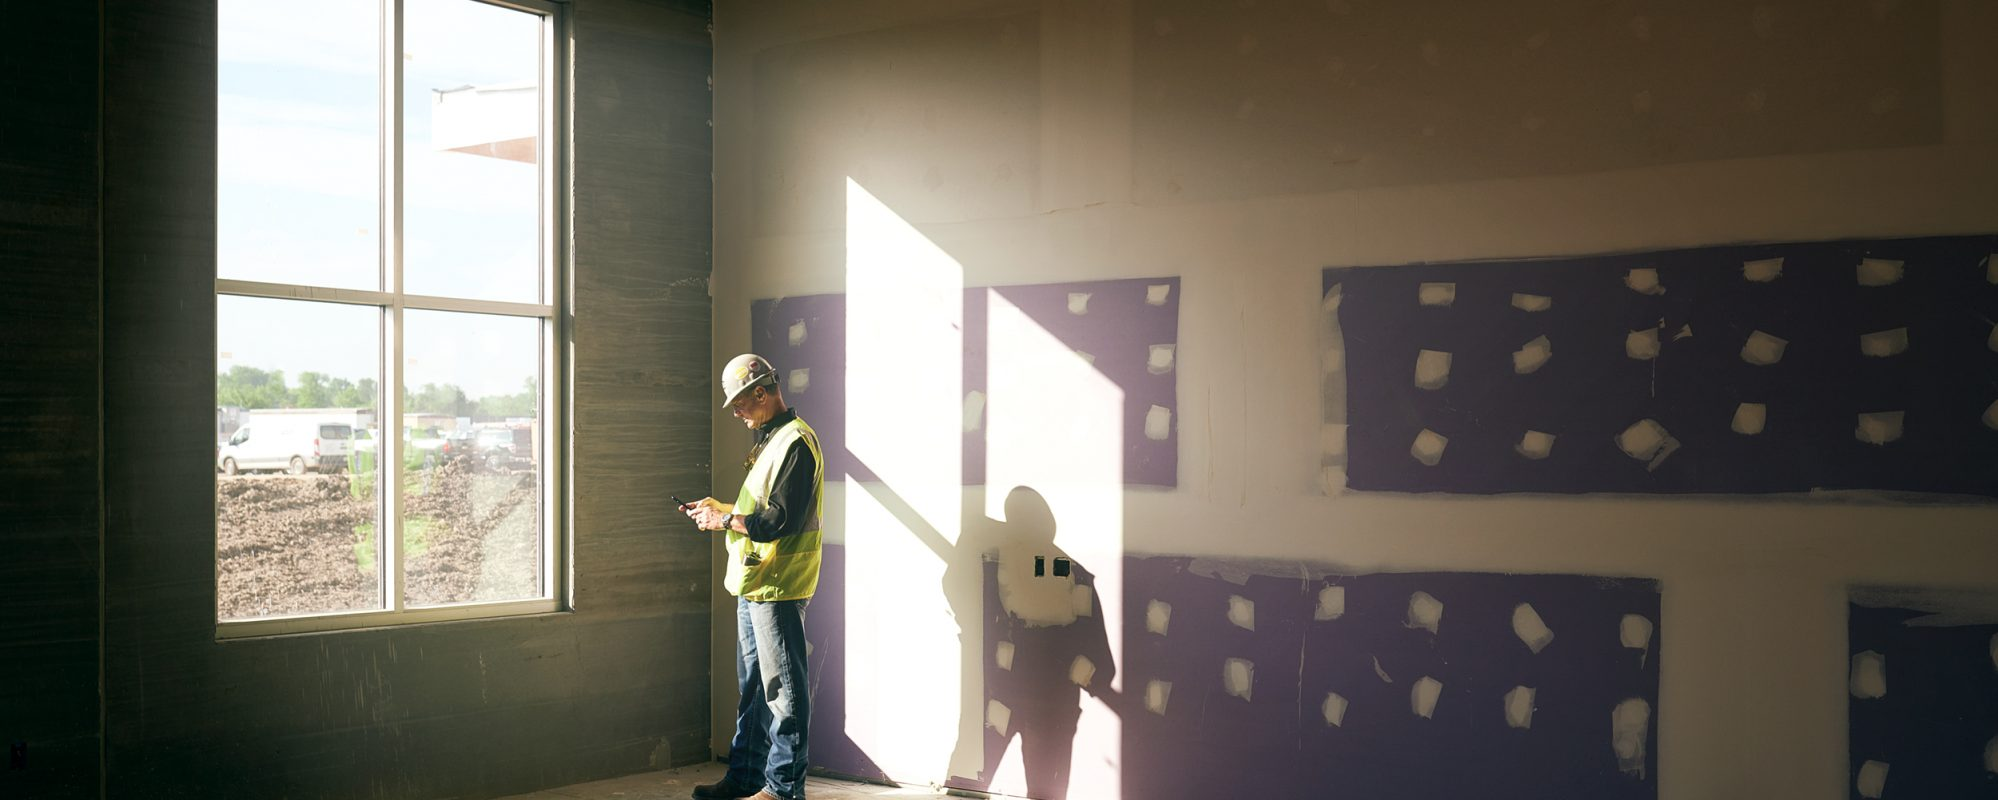 Image of construction worker checking phone at construction site